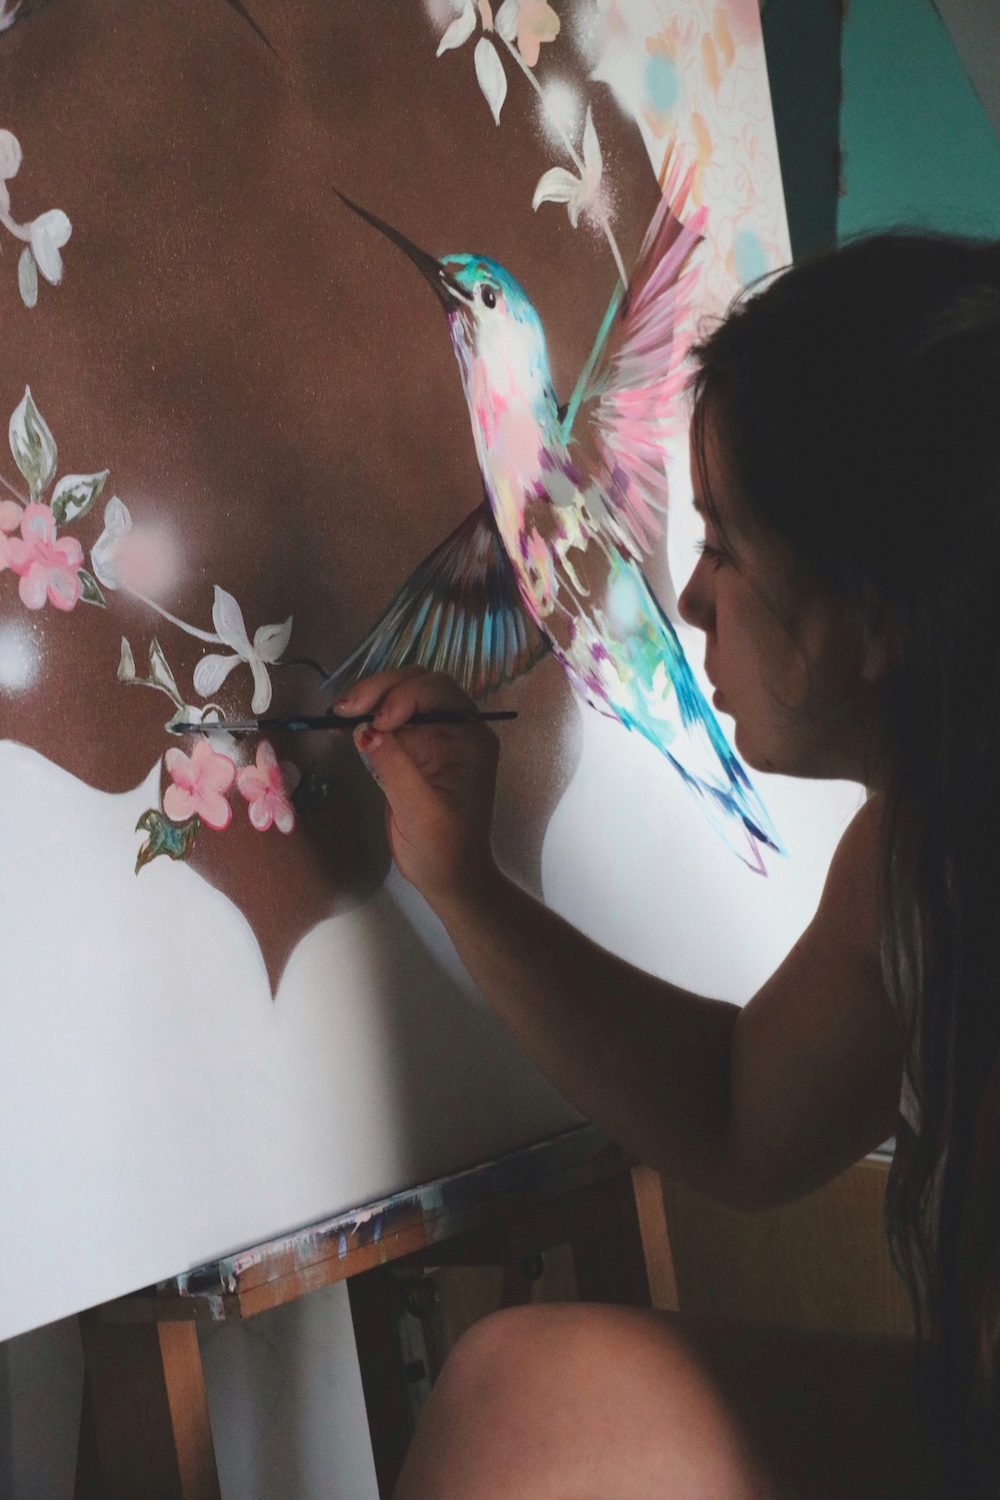 Sian Storey Art live painting